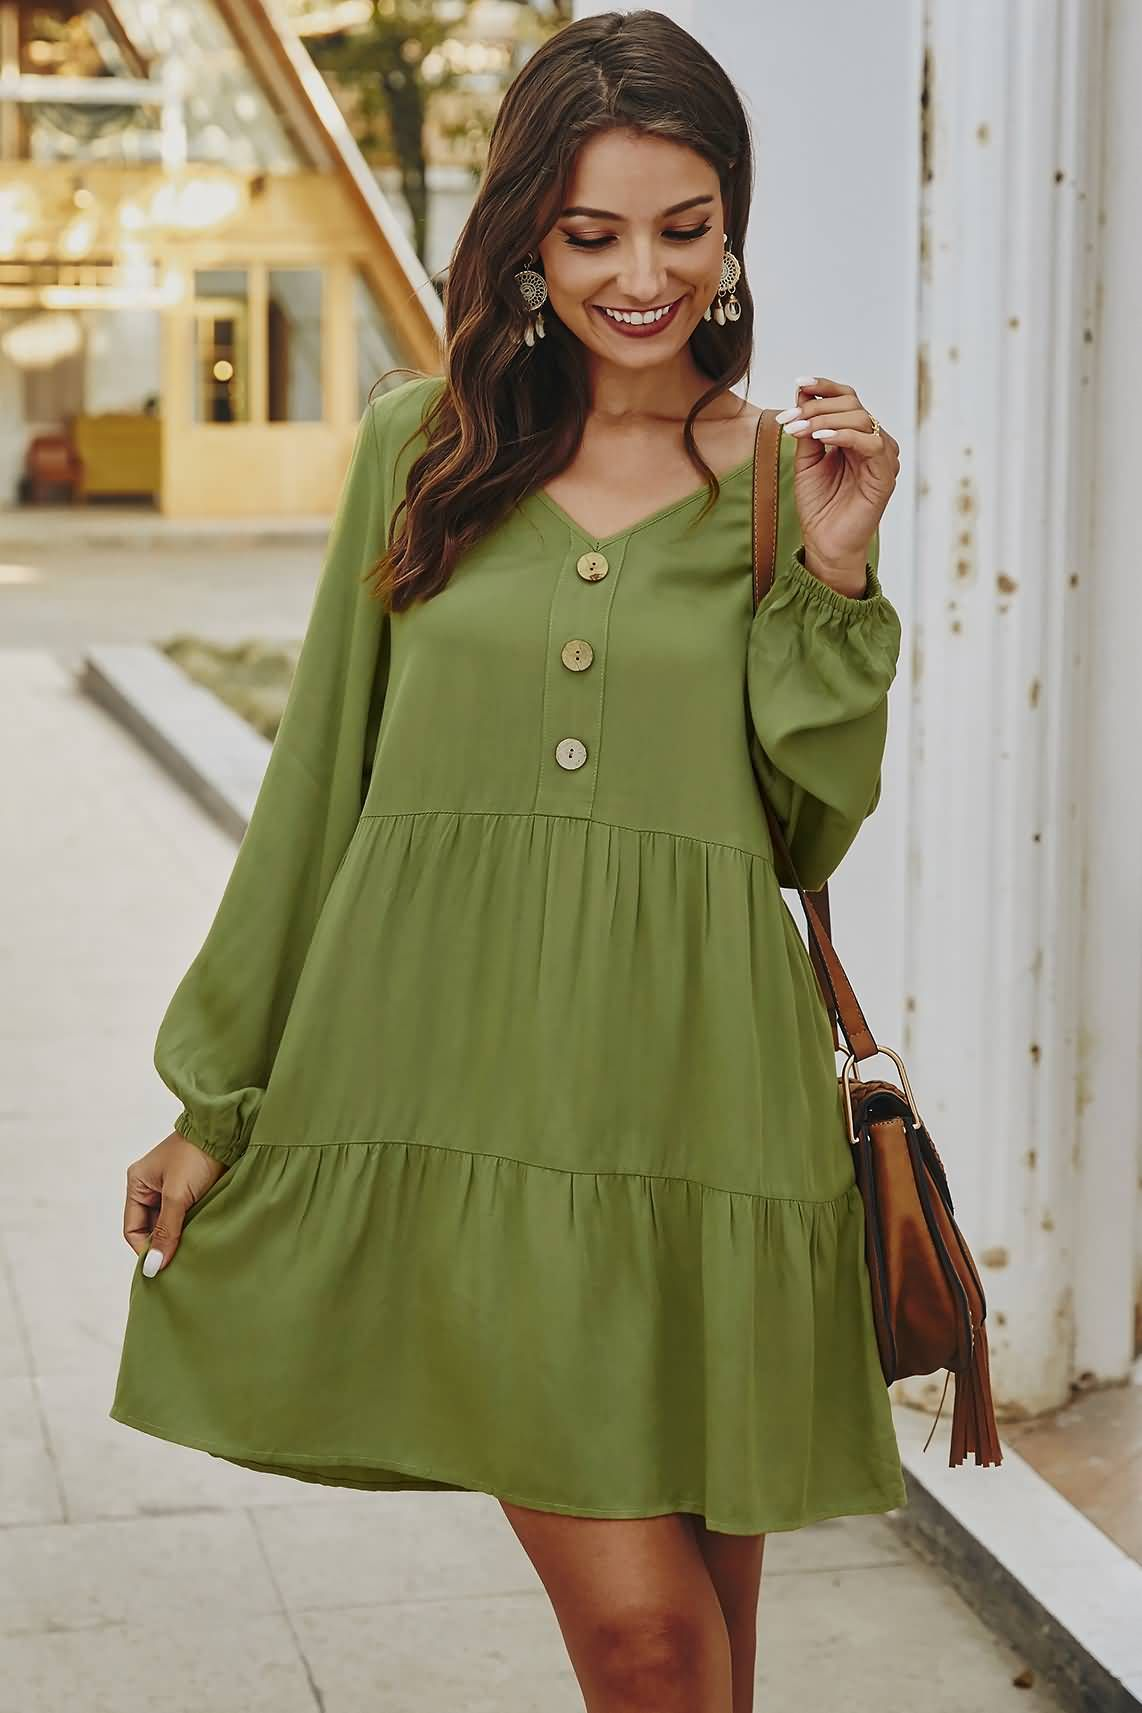 Army Green Casual V Neck Long Sleeve Button Dress In 2021 Long Sleeve Casual Dress Fashion Shift Dress Casual [ 1713 x 1142 Pixel ]